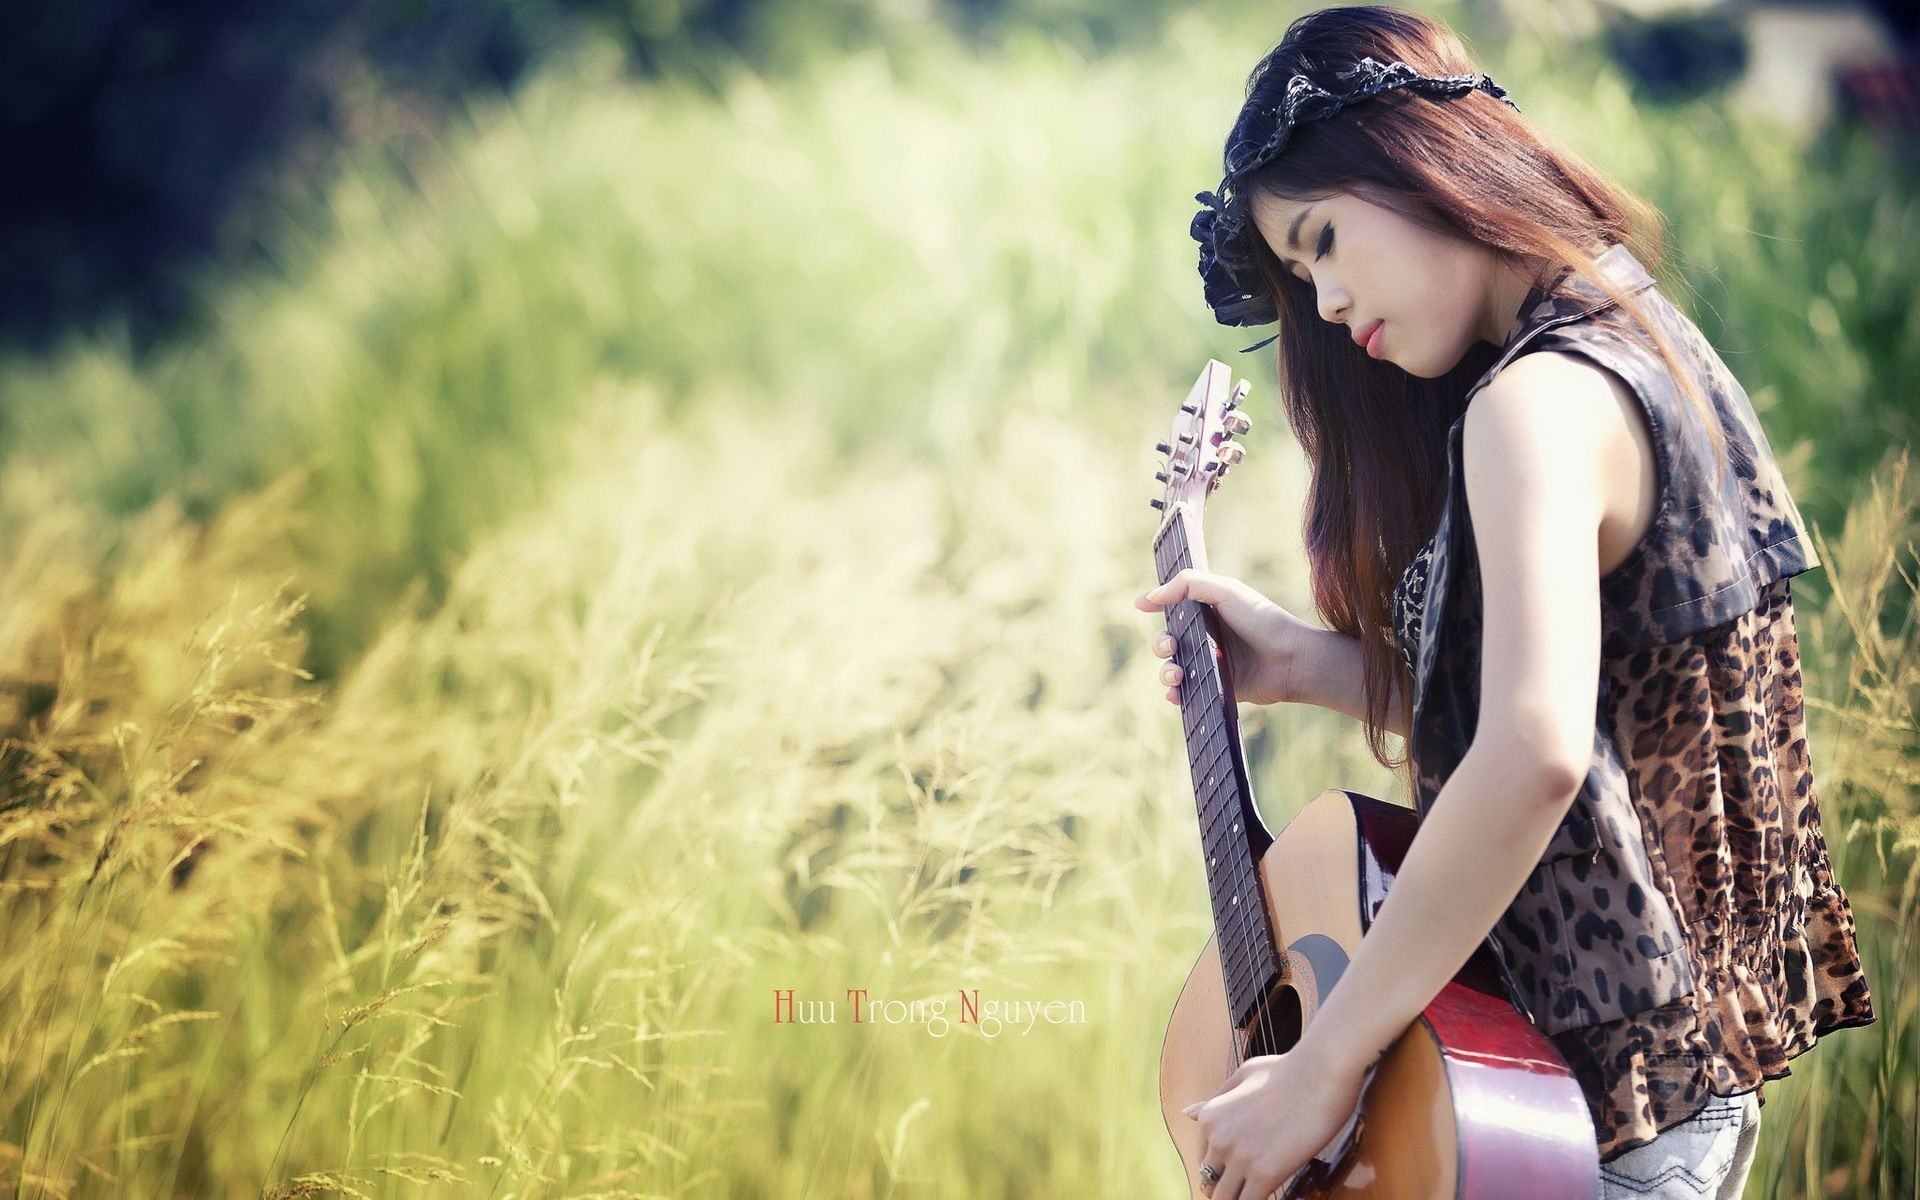 Res: 1920x1200, Cool And Stylish Profile Pictures For Facebook For Girls With Guitar Luxury  Download Free Guitar Girl Wallpapers For Your Mobile Phone By